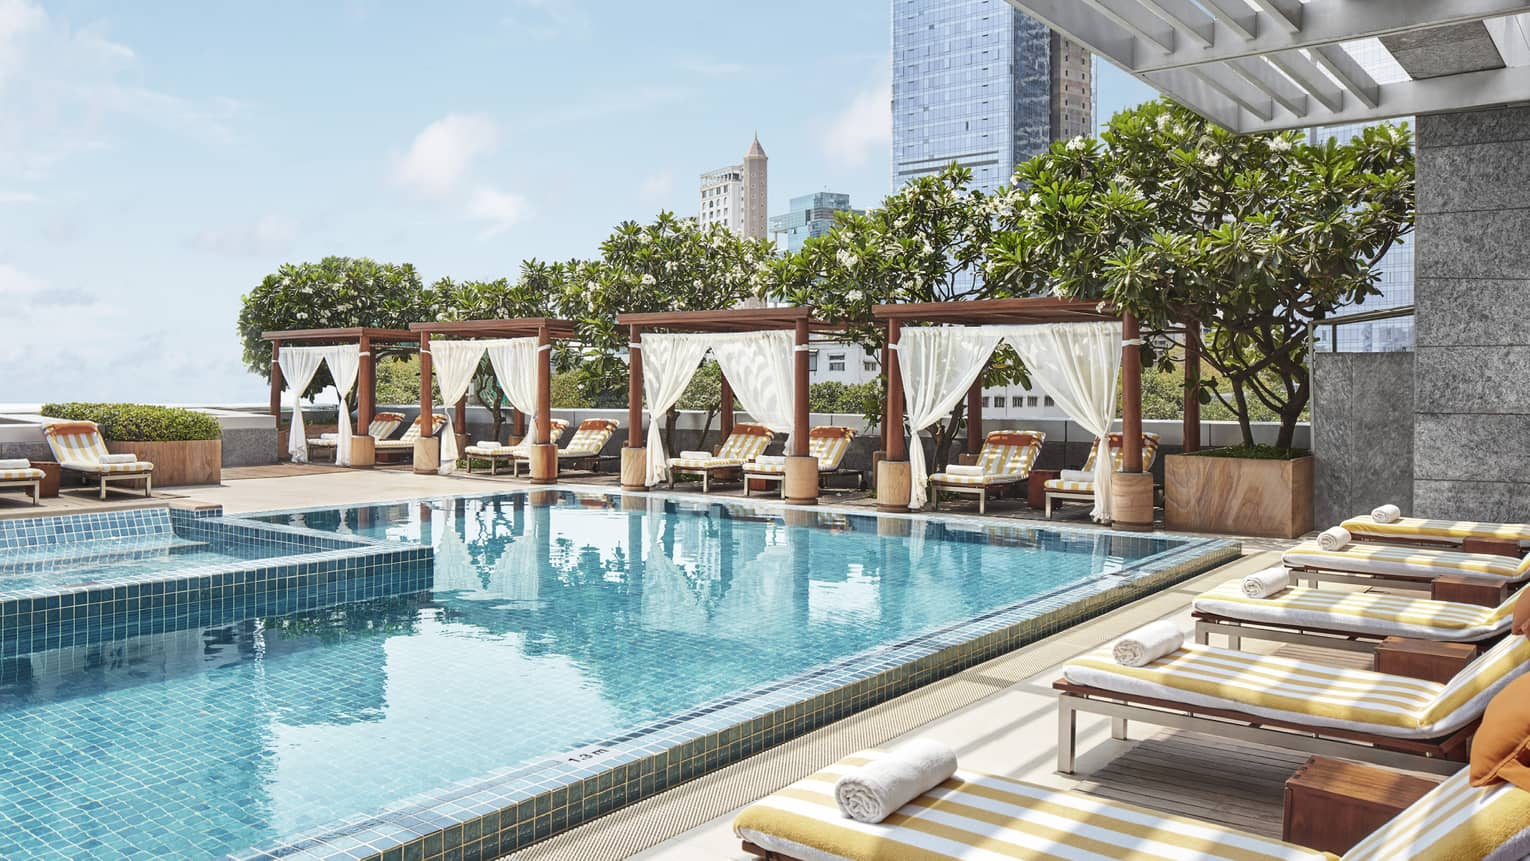 Shaded lounge chairs face the rooftop pool